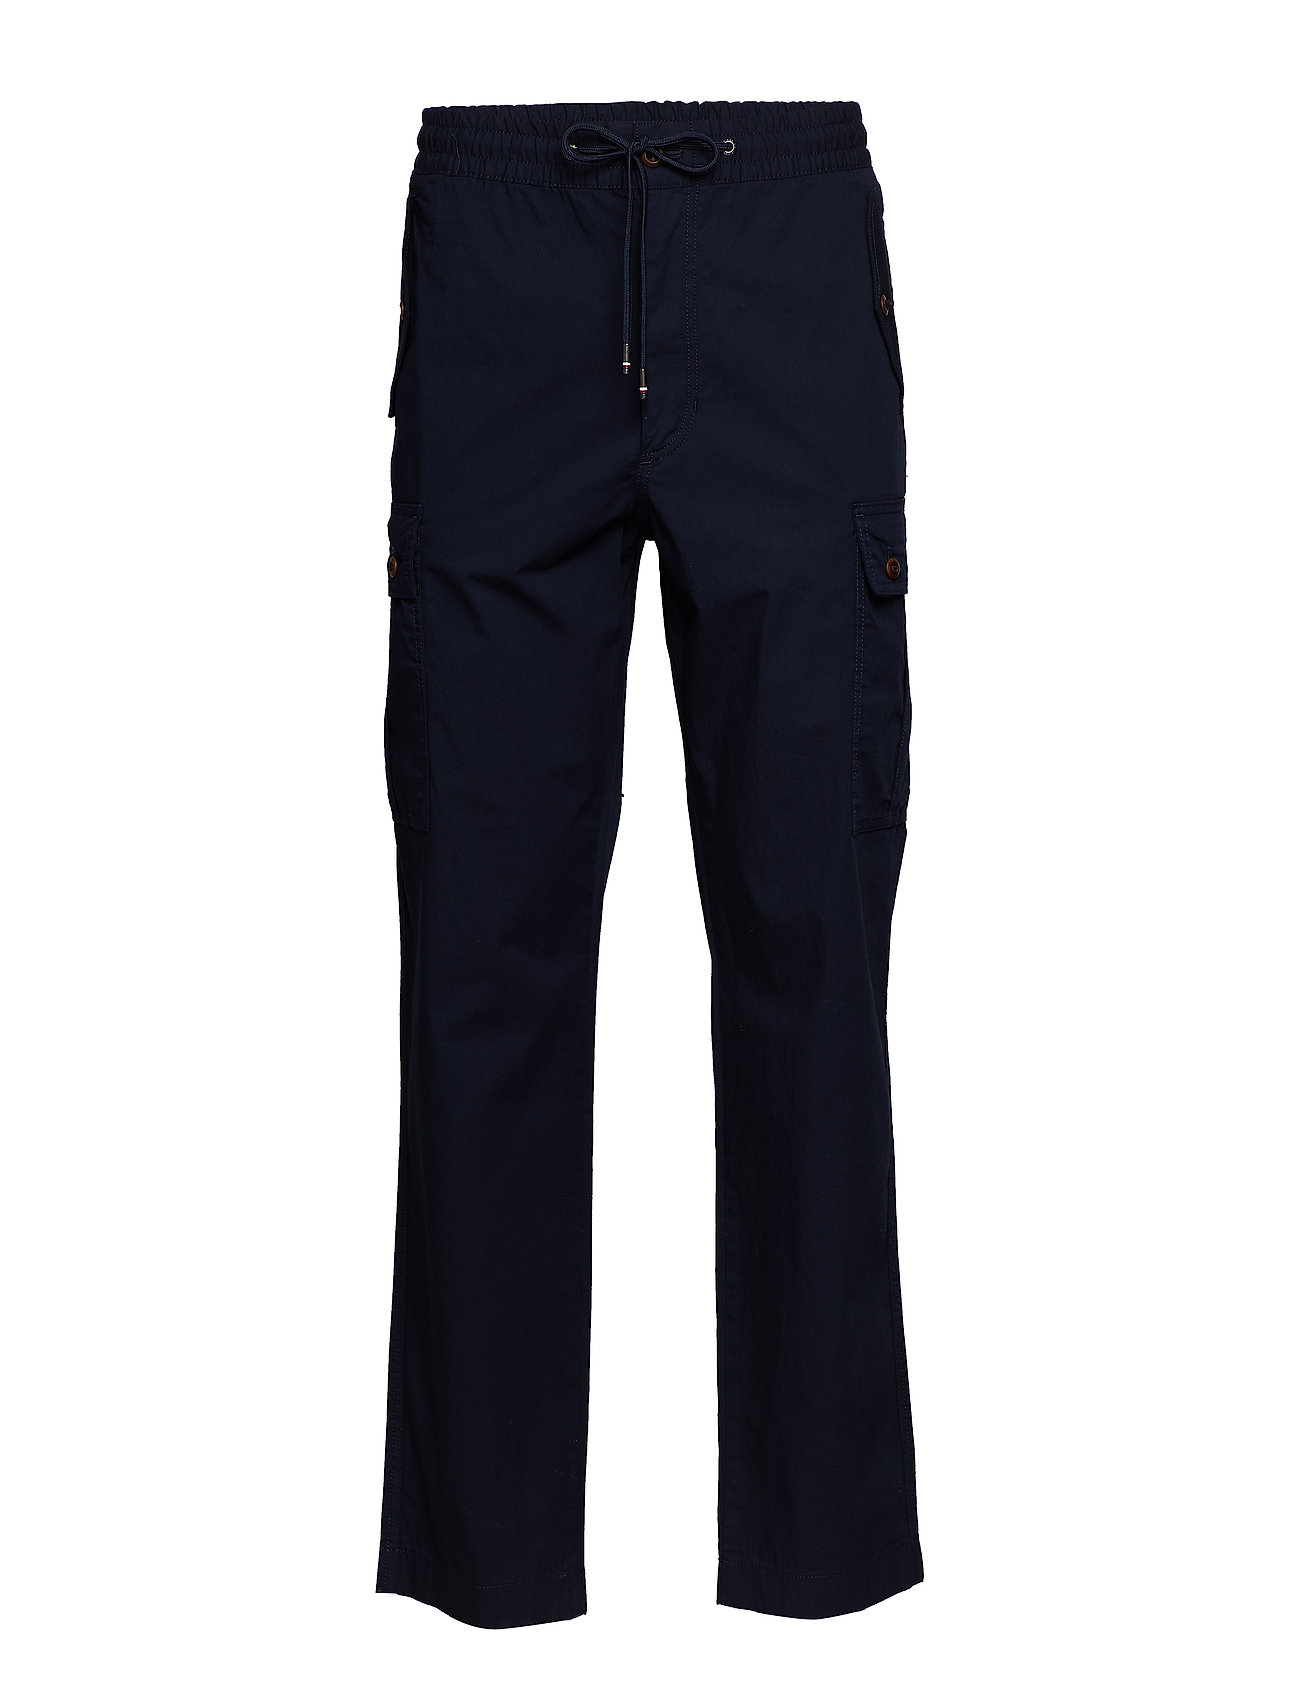 Tommy Hilfiger TRACK CARGO PANT - SKY CAPTAIN